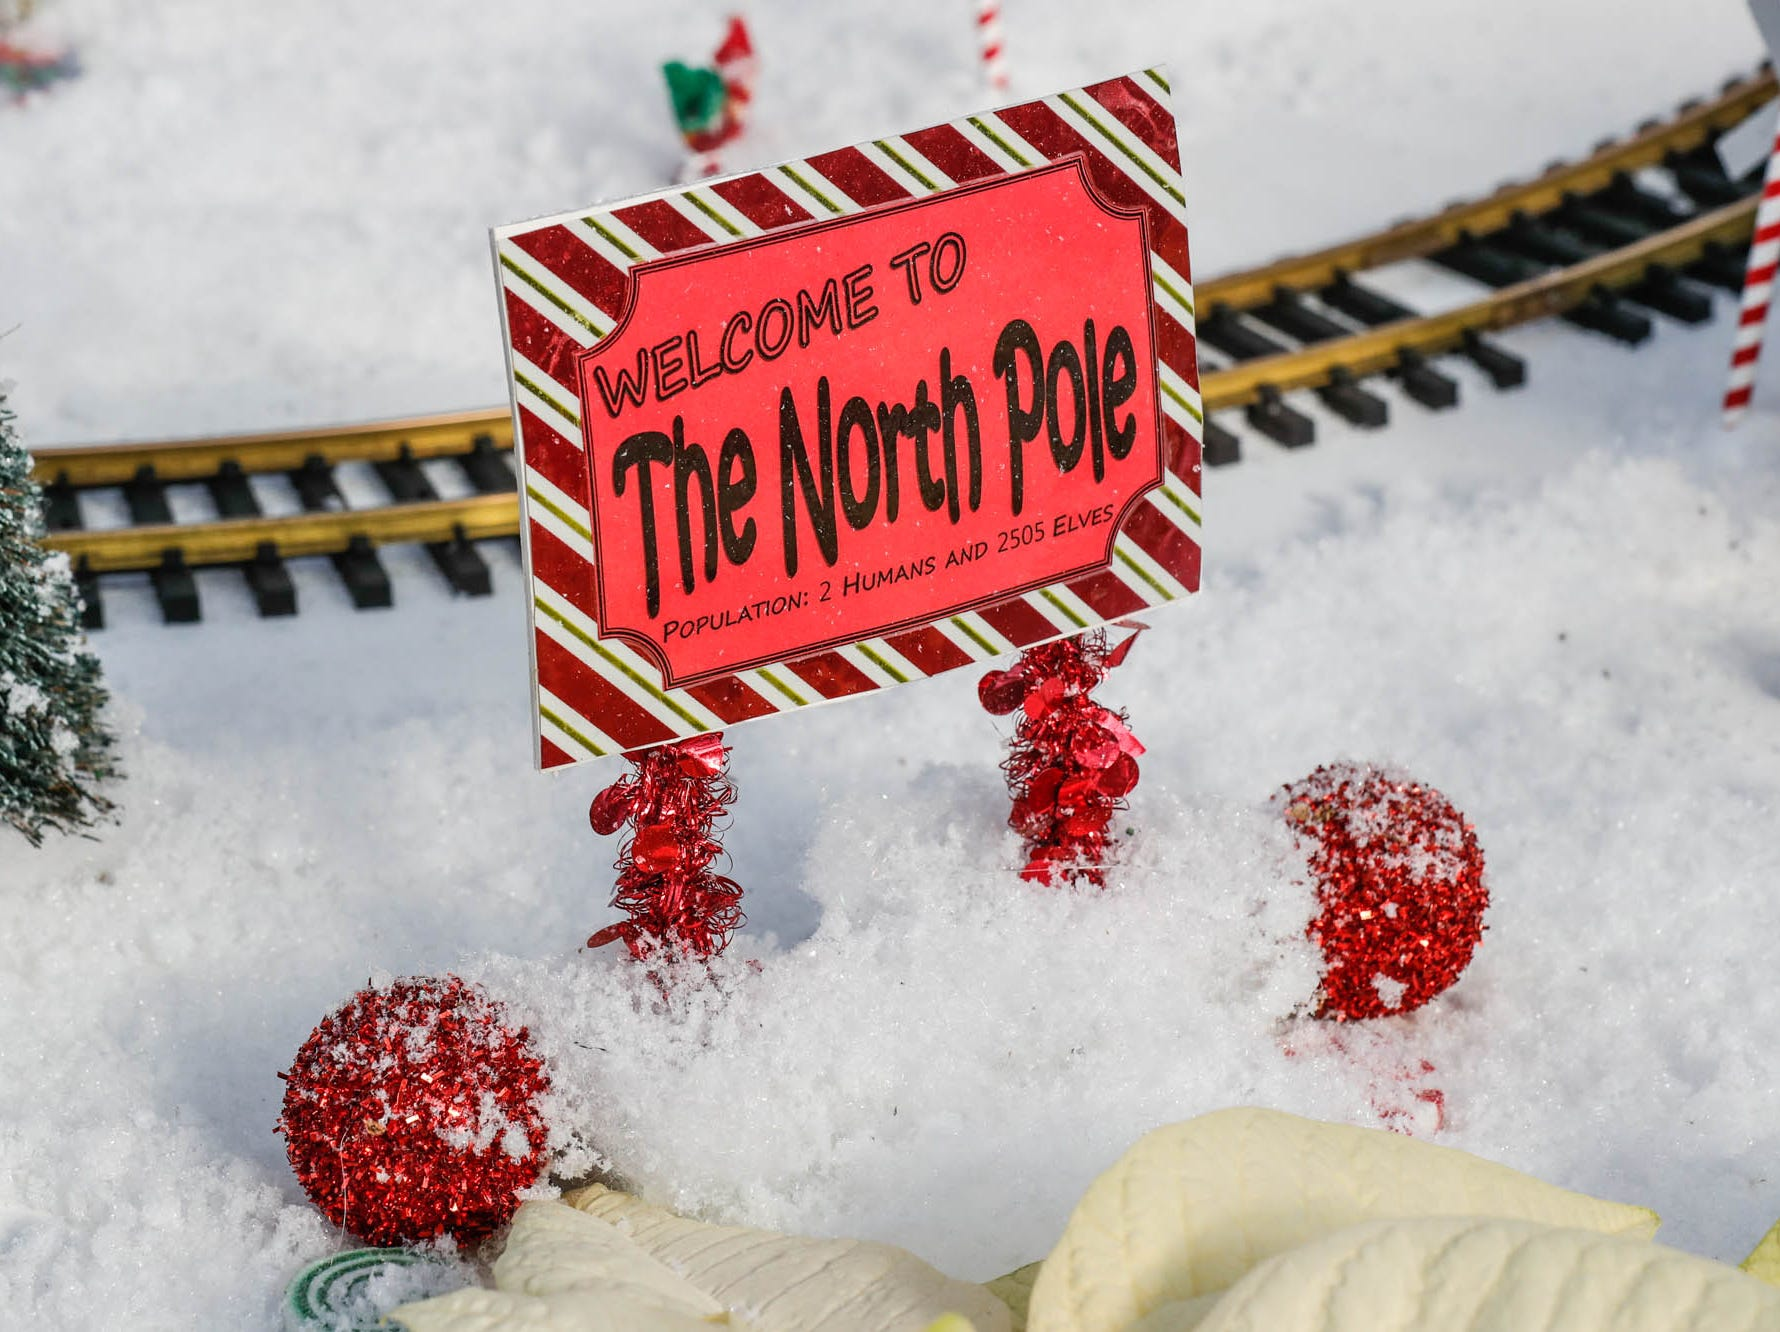 A sign welcomes guests to the North Pole in the Conservatory Crossing holiday display at the Garfield Park Conservatory on Saturday, Dec. 29, 2018.